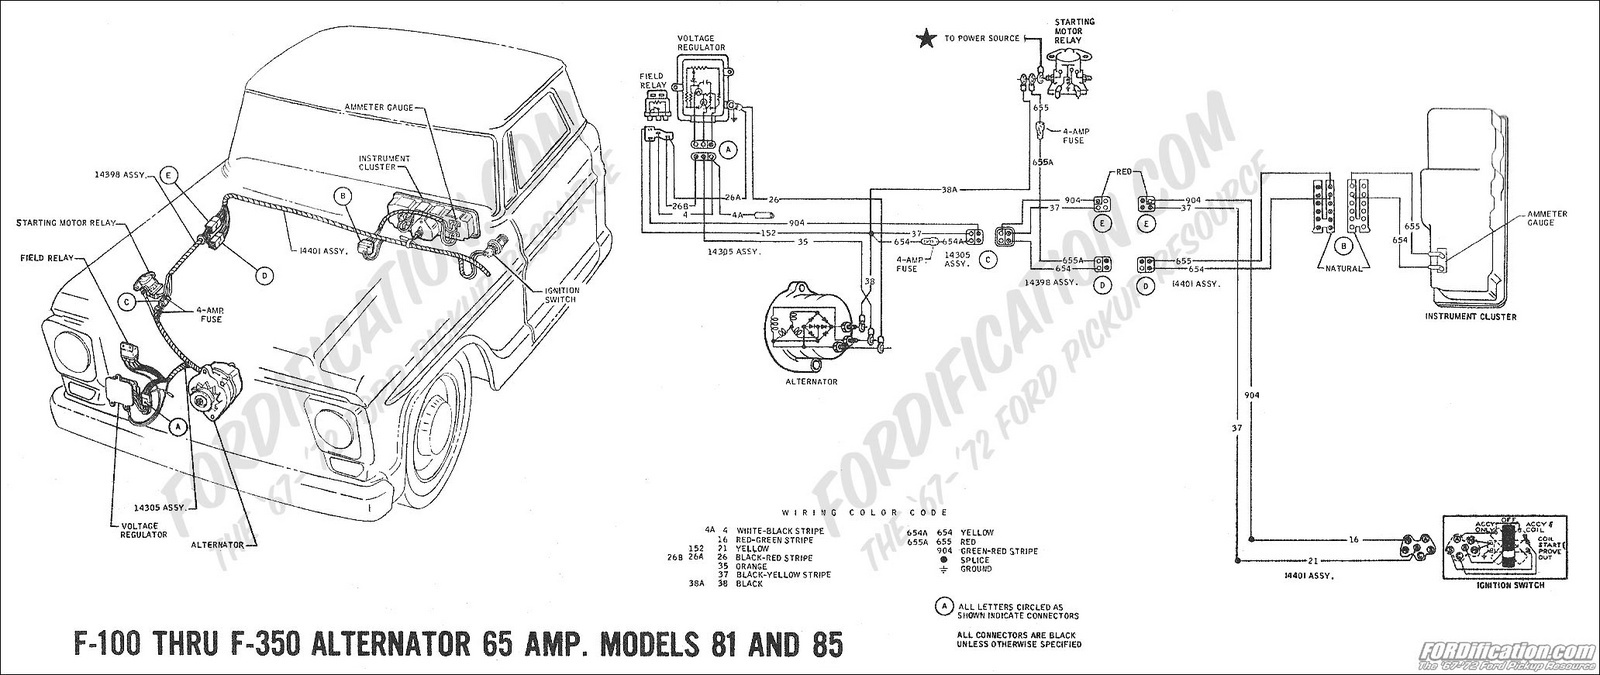 Discussion C13911 ds652668 on wiring diagram for 3 wire alternator